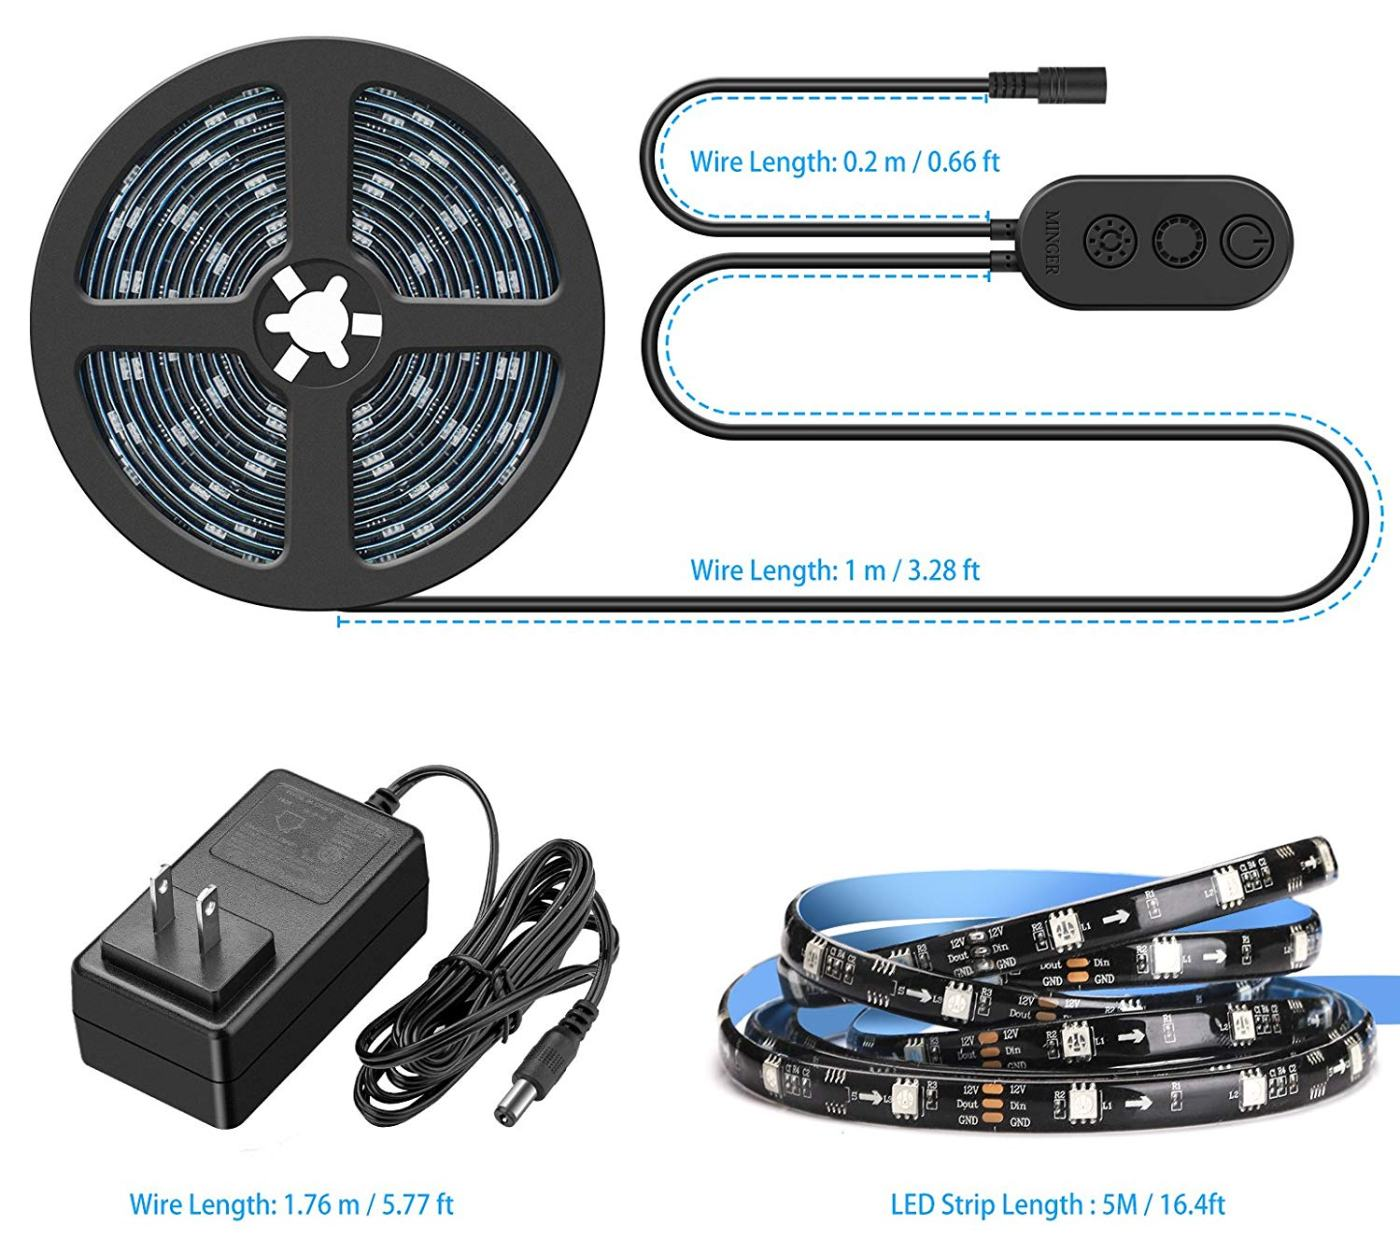 online retailer 9b481 b074d Minger Dreamcolor RGB LED strip lights review | Android News ...